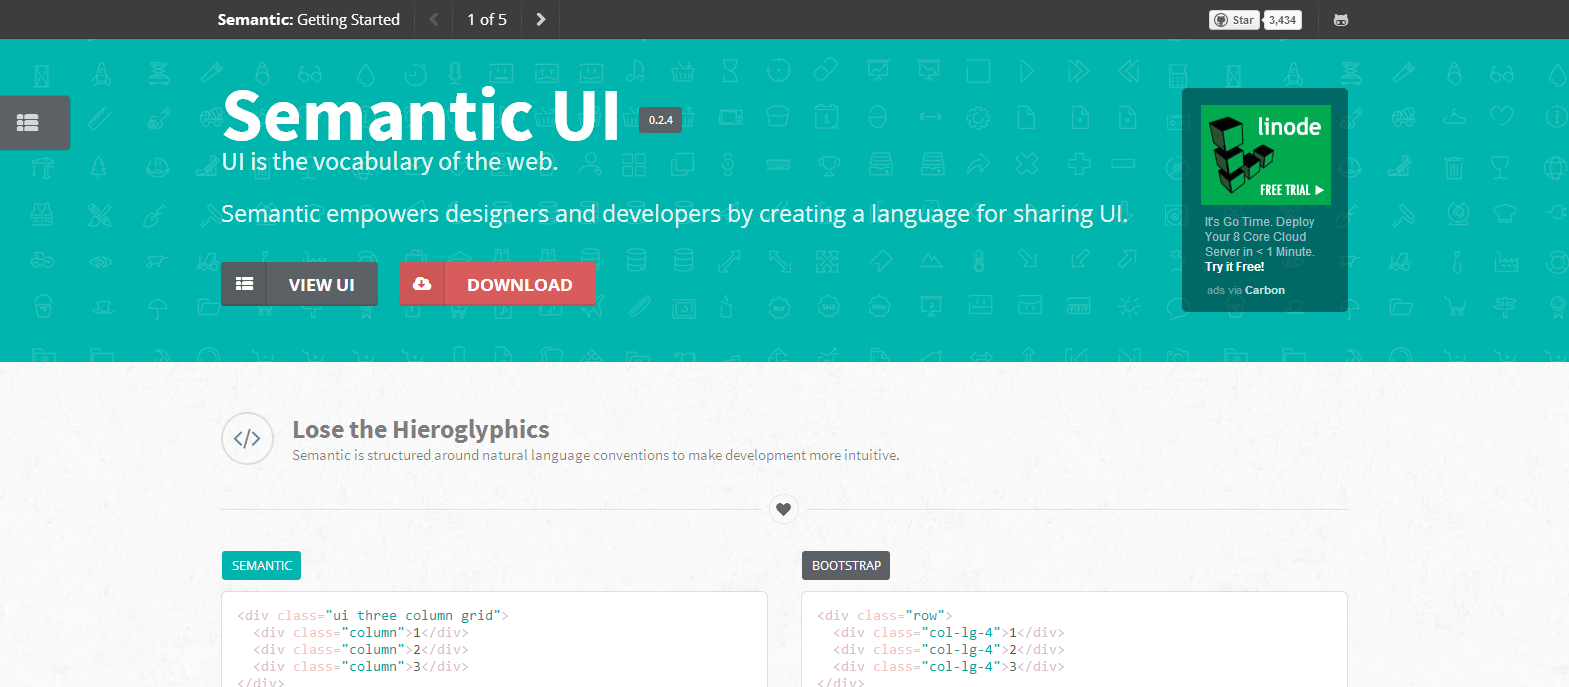 Getting Started Semantic UI